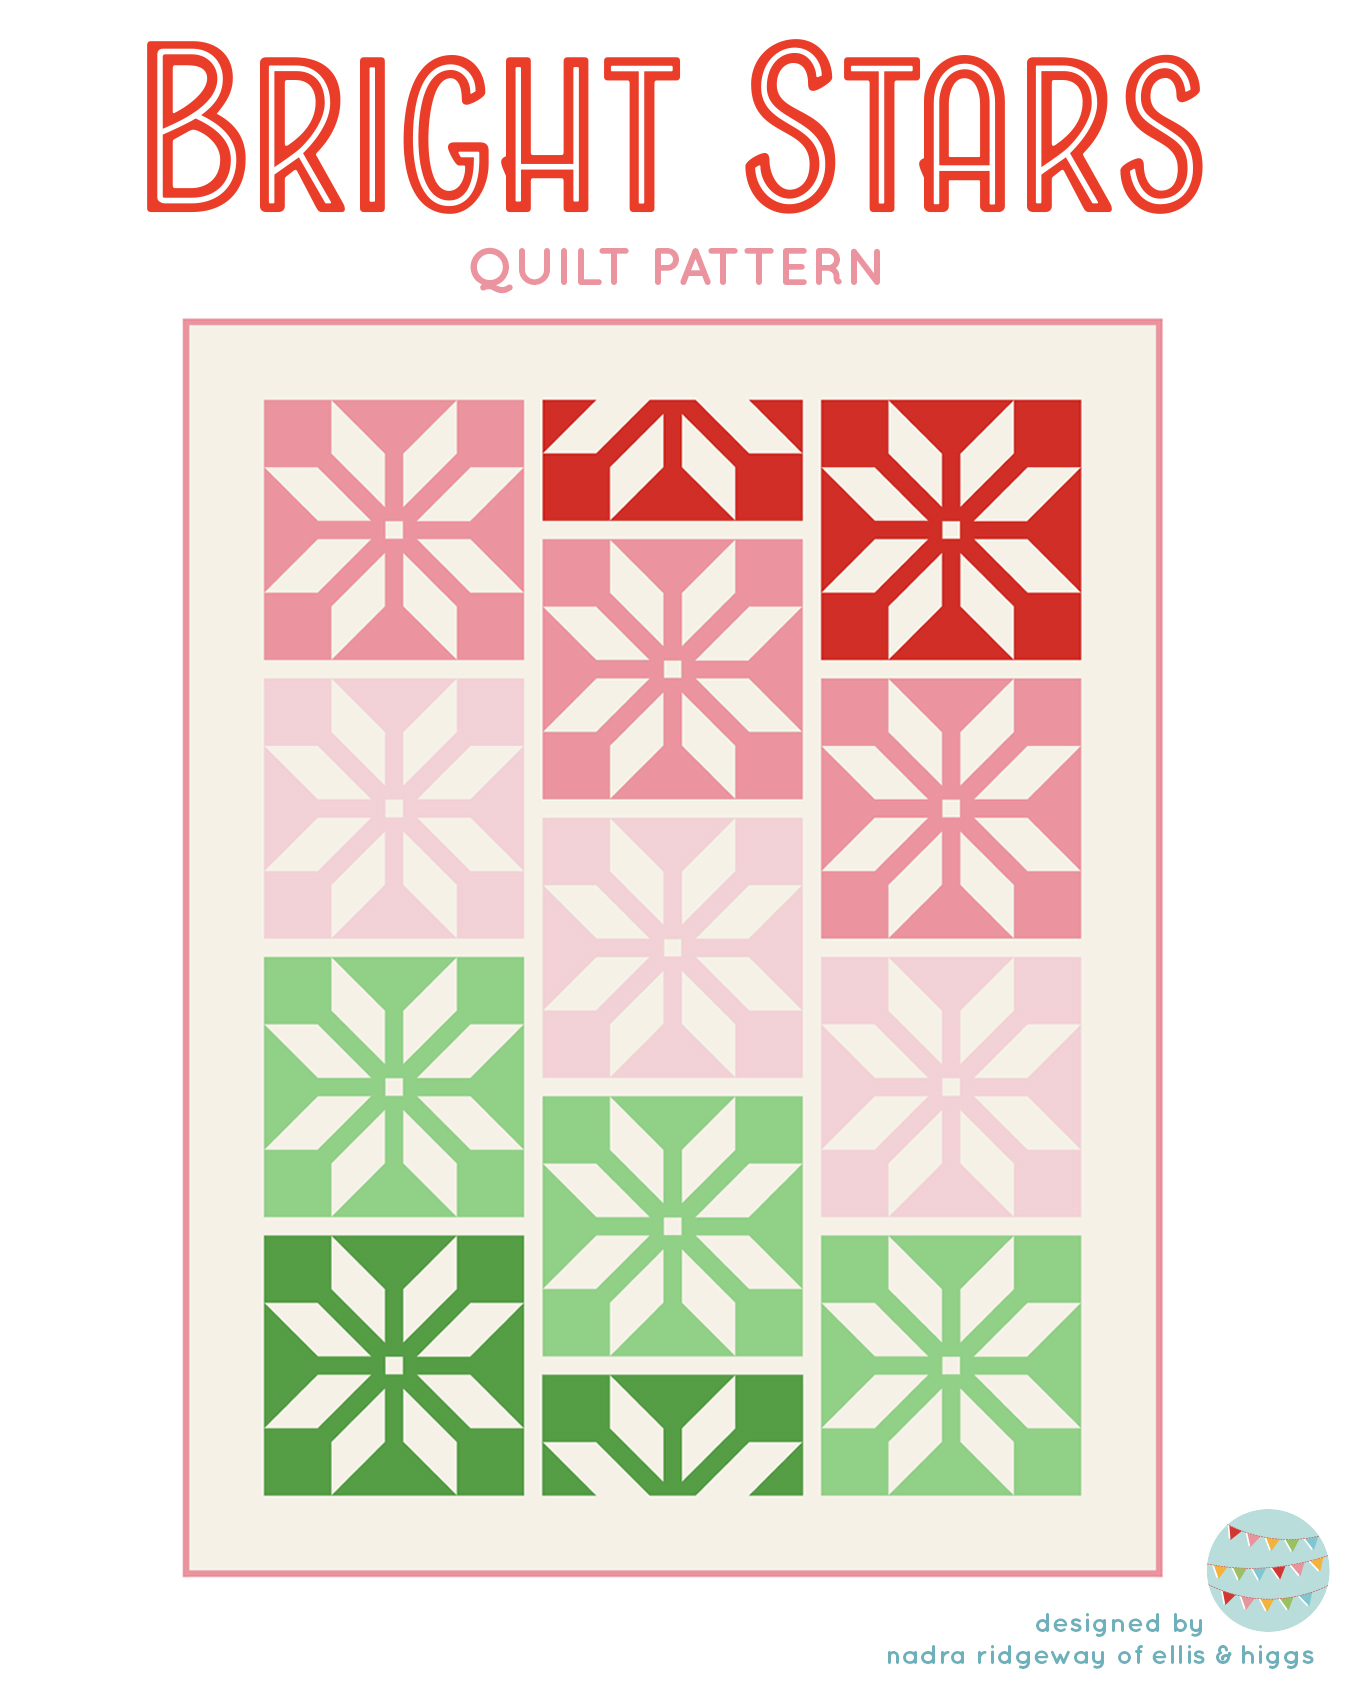 Christmas Quilt Pattern - Bright Stars Quilt Pattern